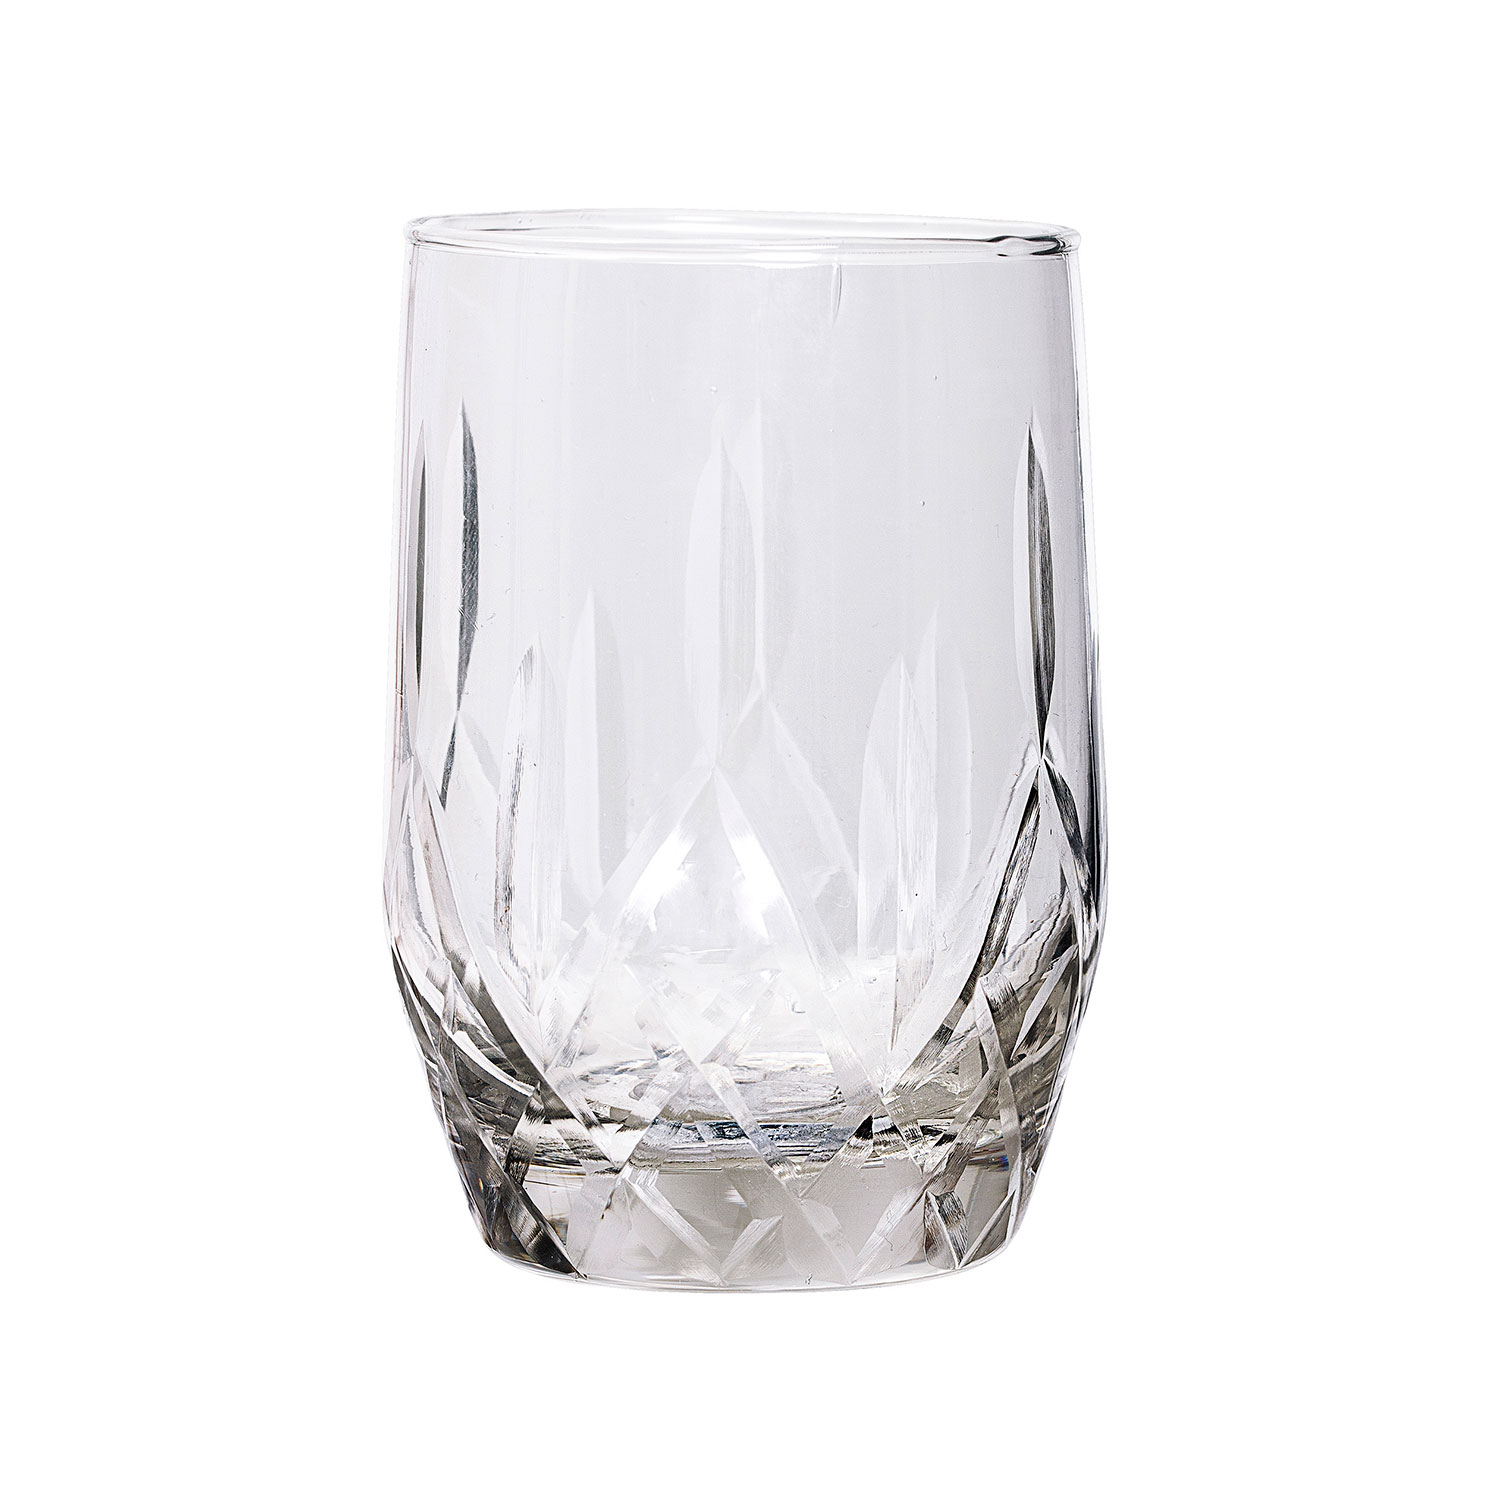 Drinking Glasses Designs Drinking Glass Clear Bloomingville Royaldesign